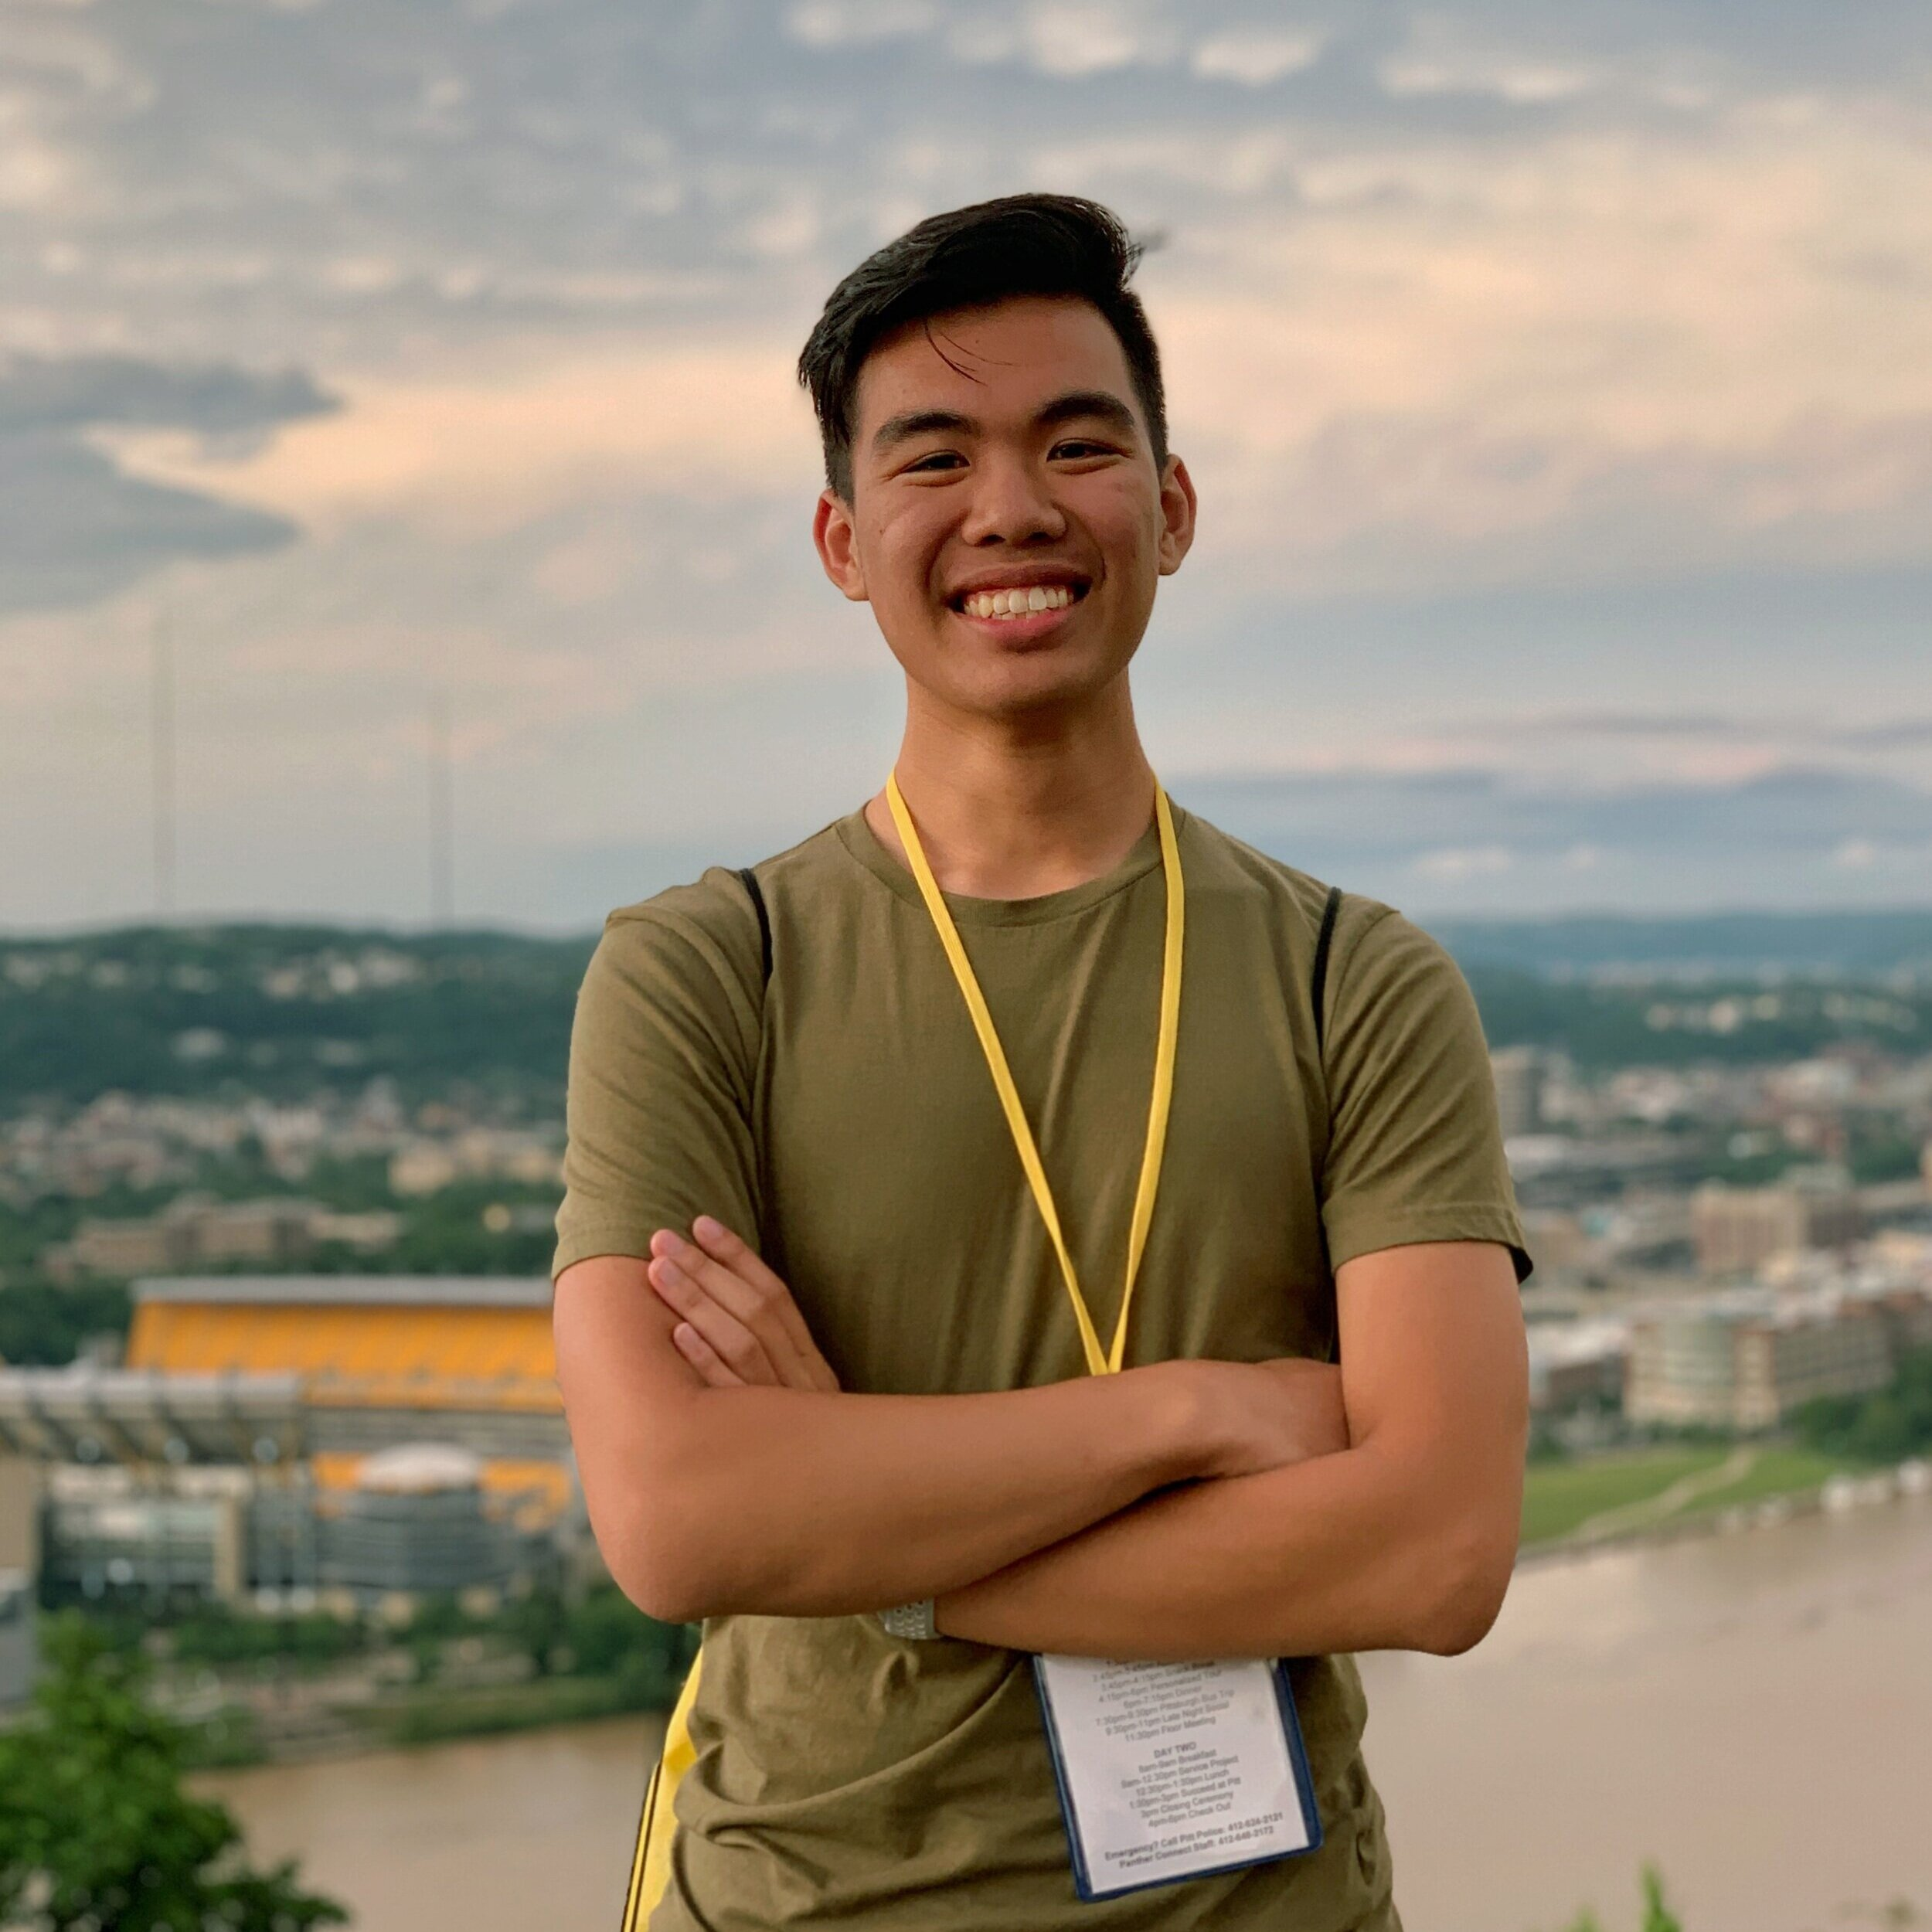 """Tommy Nguyen    Pronouns:  He/His/Him   Academic Year:  Freshman   Major:  Neuroscience, Chemistry, and Spanish   Hometown:  York, PA   Cultural Identity:  Vietnamese  """"I'm a STEM major so I'm super interested in science and especially medicine because I will be entering the medical field after undergraduate studies. As for my hobbies, I absolutely love music because I started to sing at a young age and I still do. Also, I play/currently learning 5 instruments: Piano, Guitar, Saxophone, Ukulele, and Cello. I'm also a self-taught photographer, so I'm trying to pick that up with the equipment I have (not much because I'm broke), but I have a photography IG @21st.era! Moreover, I'm an introvert at first, but after I become more comfortable, I become an extrovert and I love to talk. Late night talks or coffee talks are one of my favorite things to do in my free time besides music. OH, I loveeee coffee (cafe sun da or an iced caramel latte) and tea (boba and peppermint)."""""""